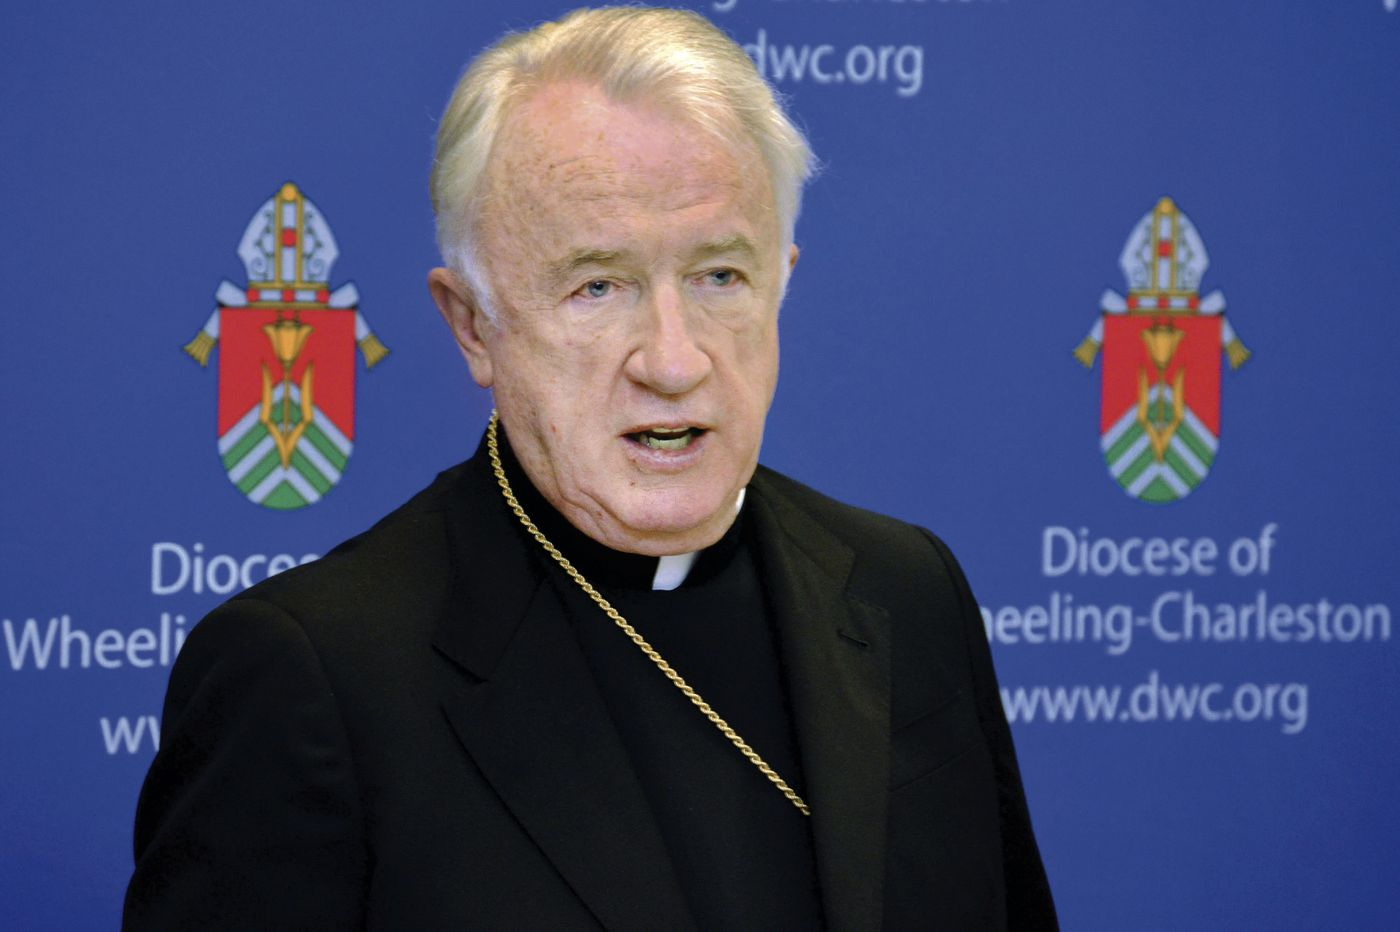 Warnings about West Virginia bishop went unheeded as he doled out cash gifts to Catholic leaders